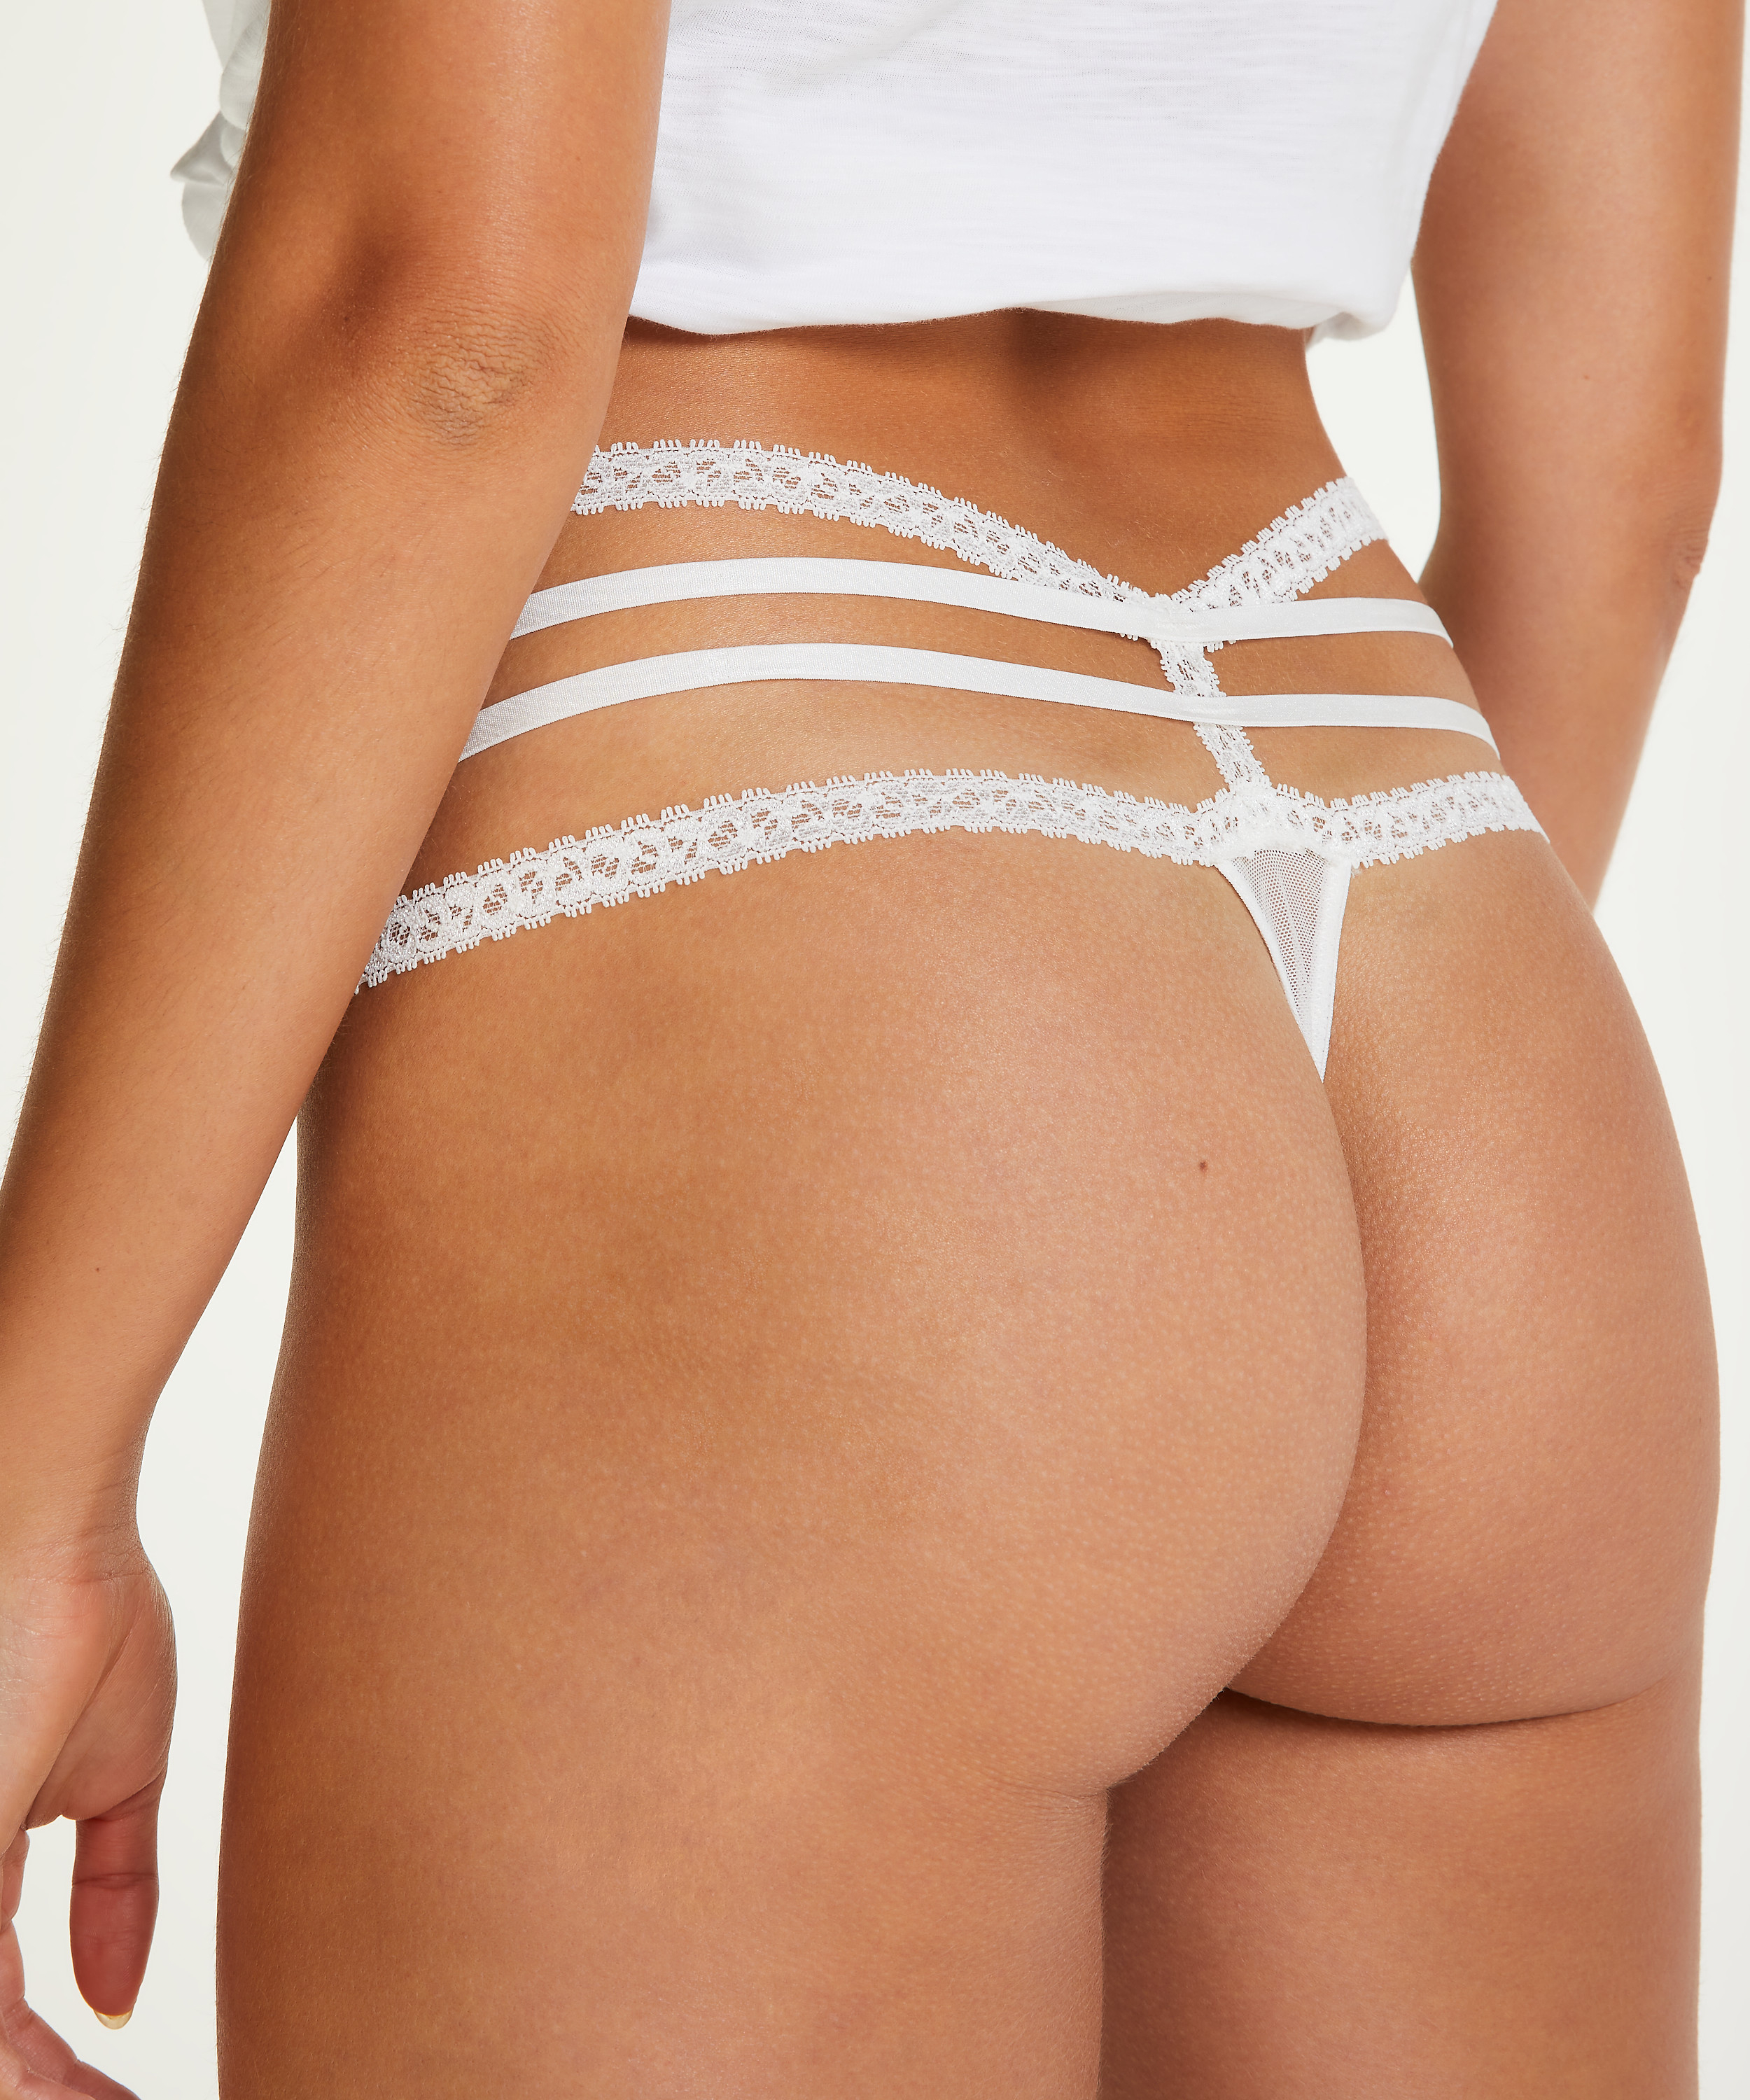 Lorraine Extra Low-rise Thong, White, main